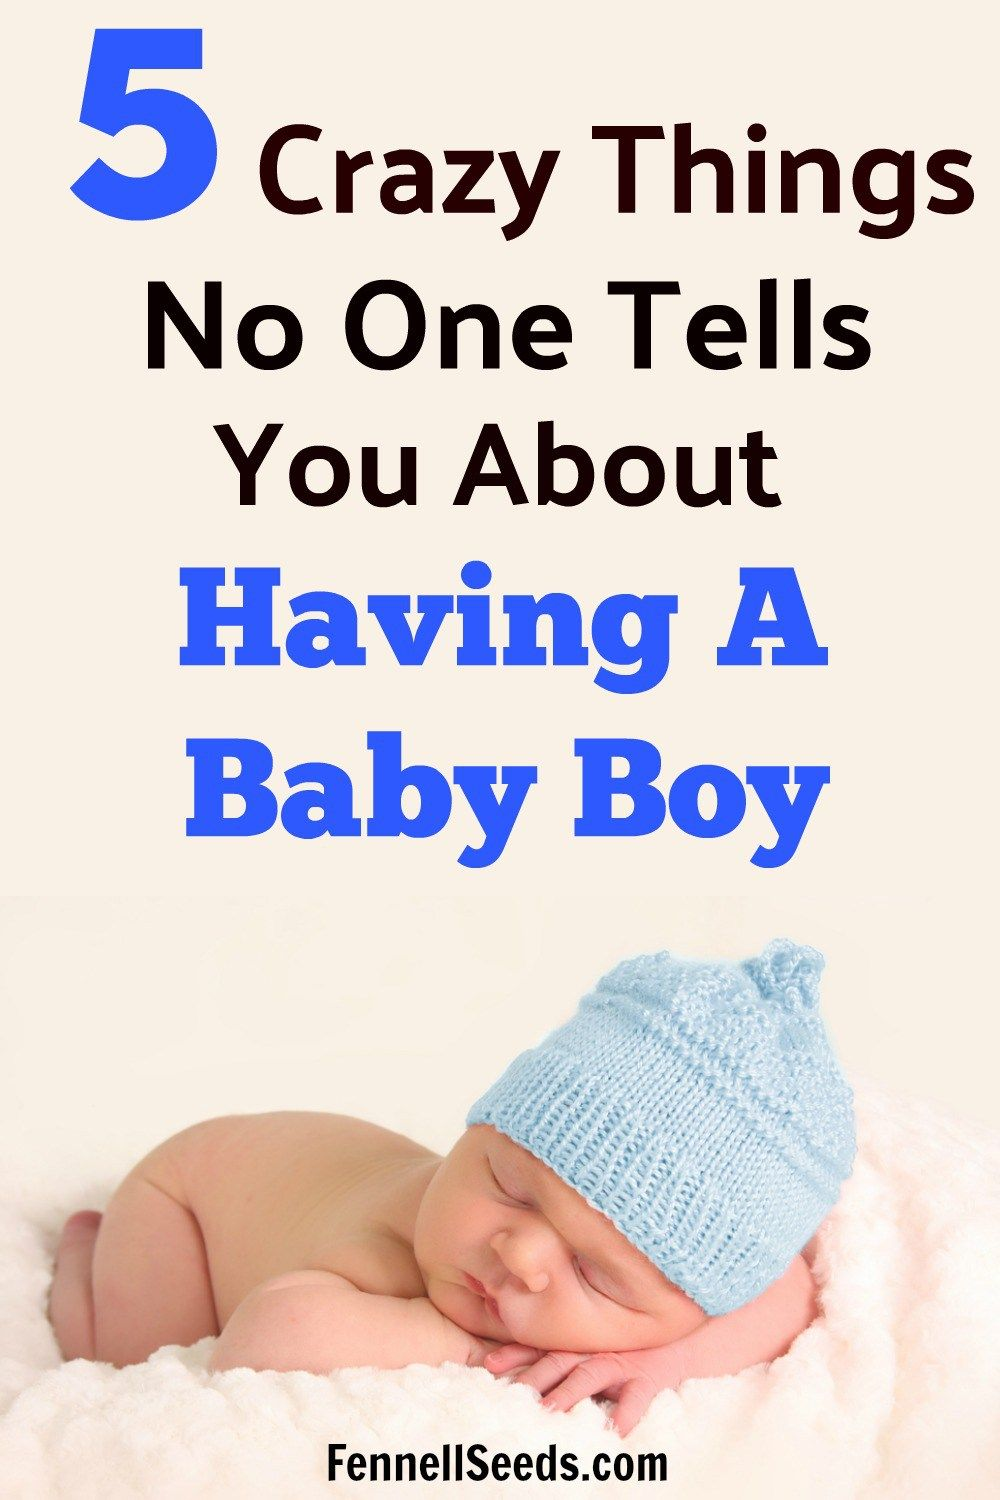 A list of things you need to know about having a baby boy versus having a girl. This is great preparation for having a newborn boy.